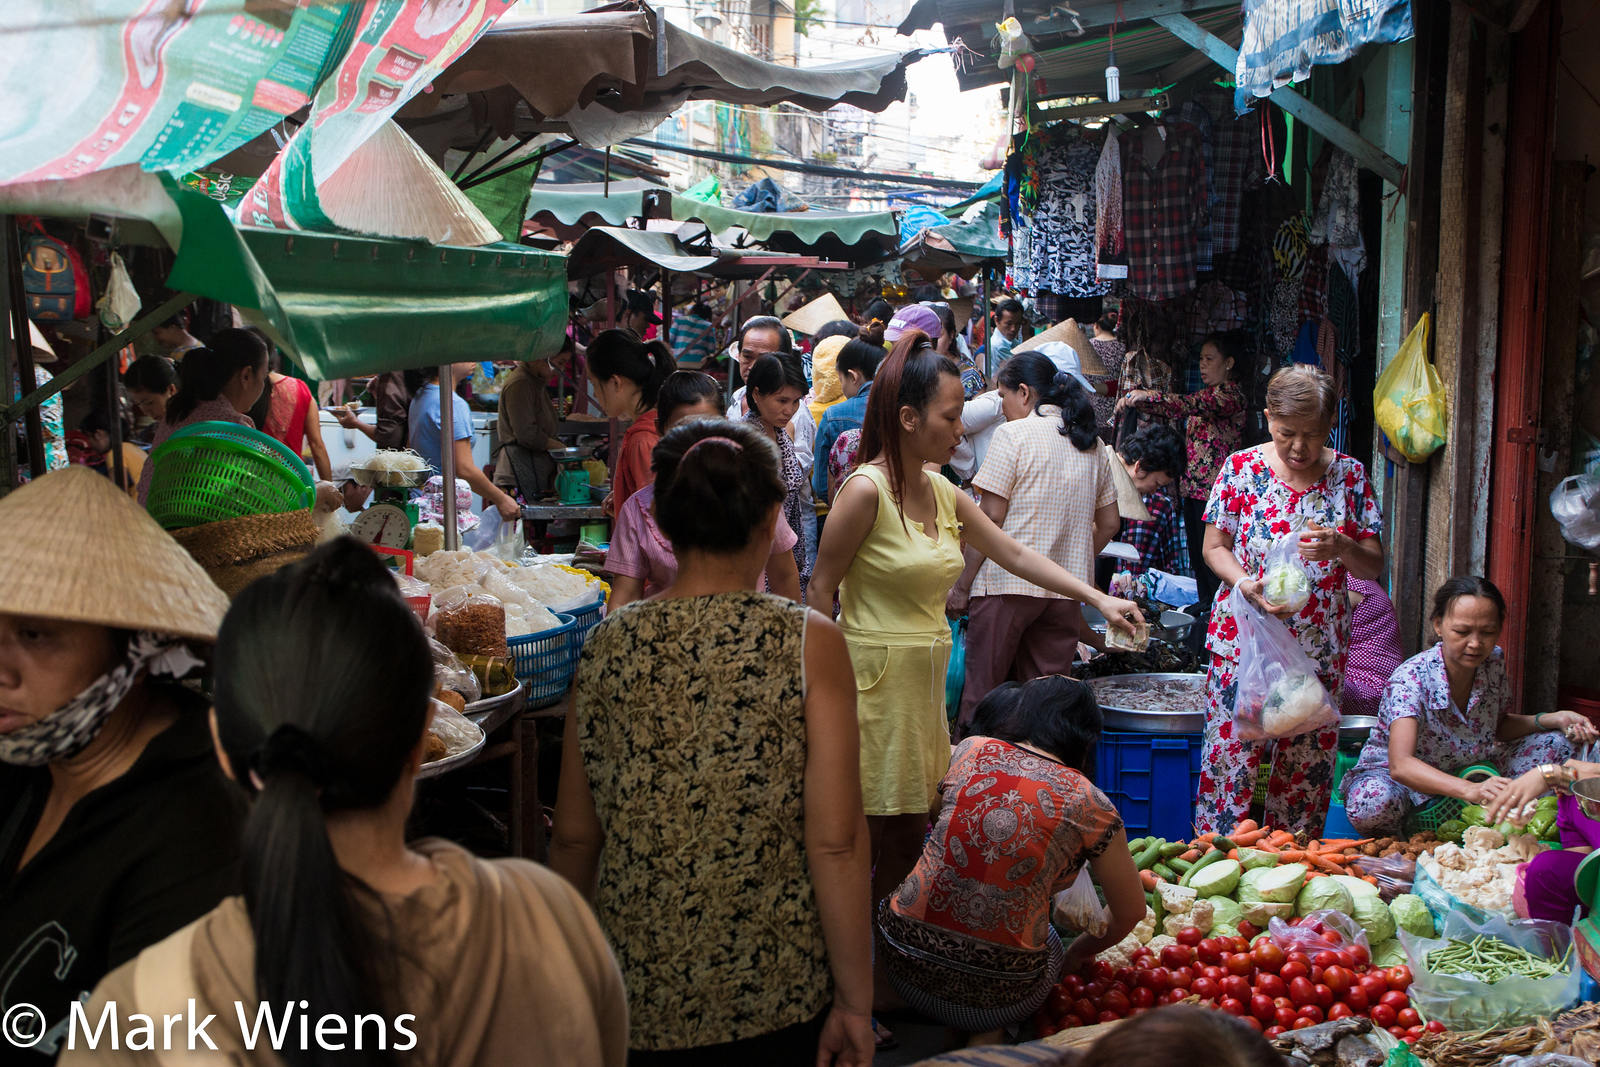 Saigon markets